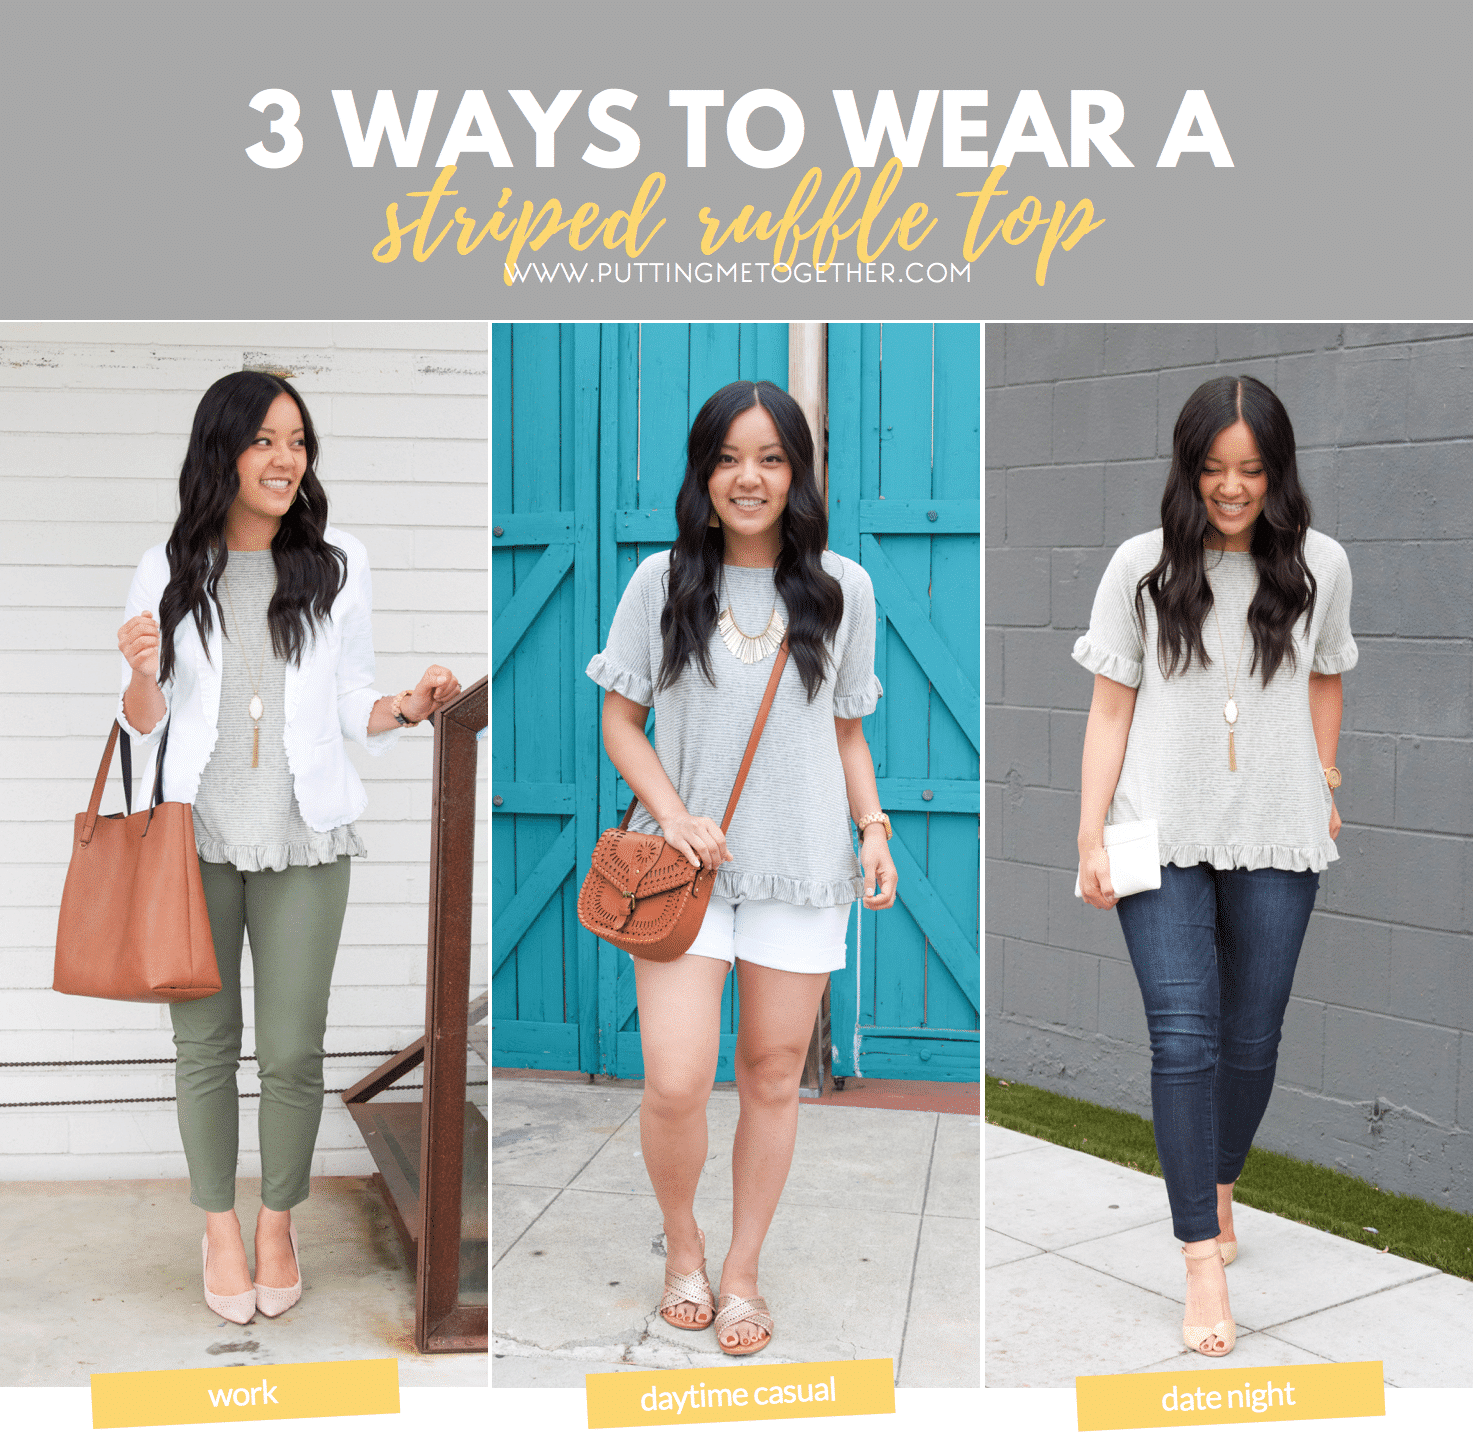 dca6cd6033a 3 Ways to Wear an Olive Striped Ruffle Top  Work